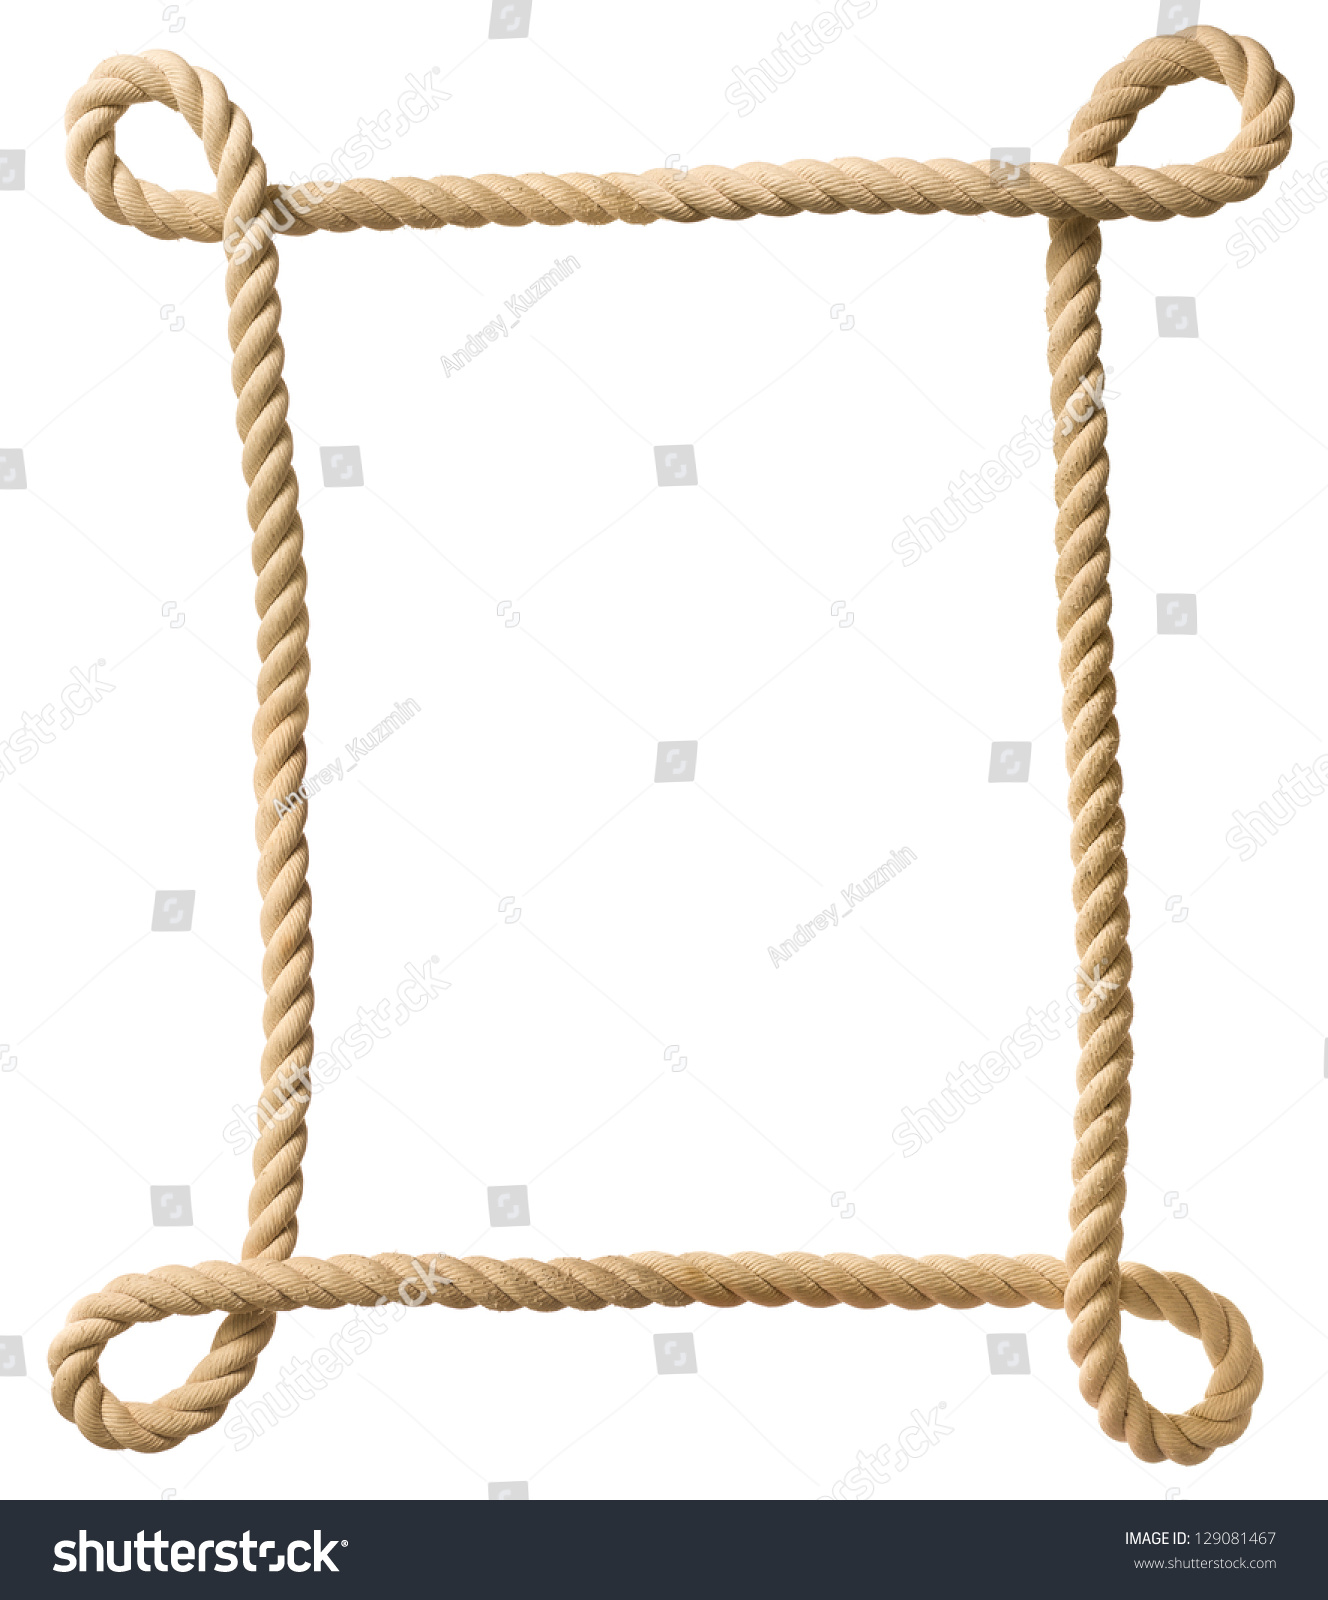 Rope Frame Isolated On White Stock Photo 129081467: rope photo frame